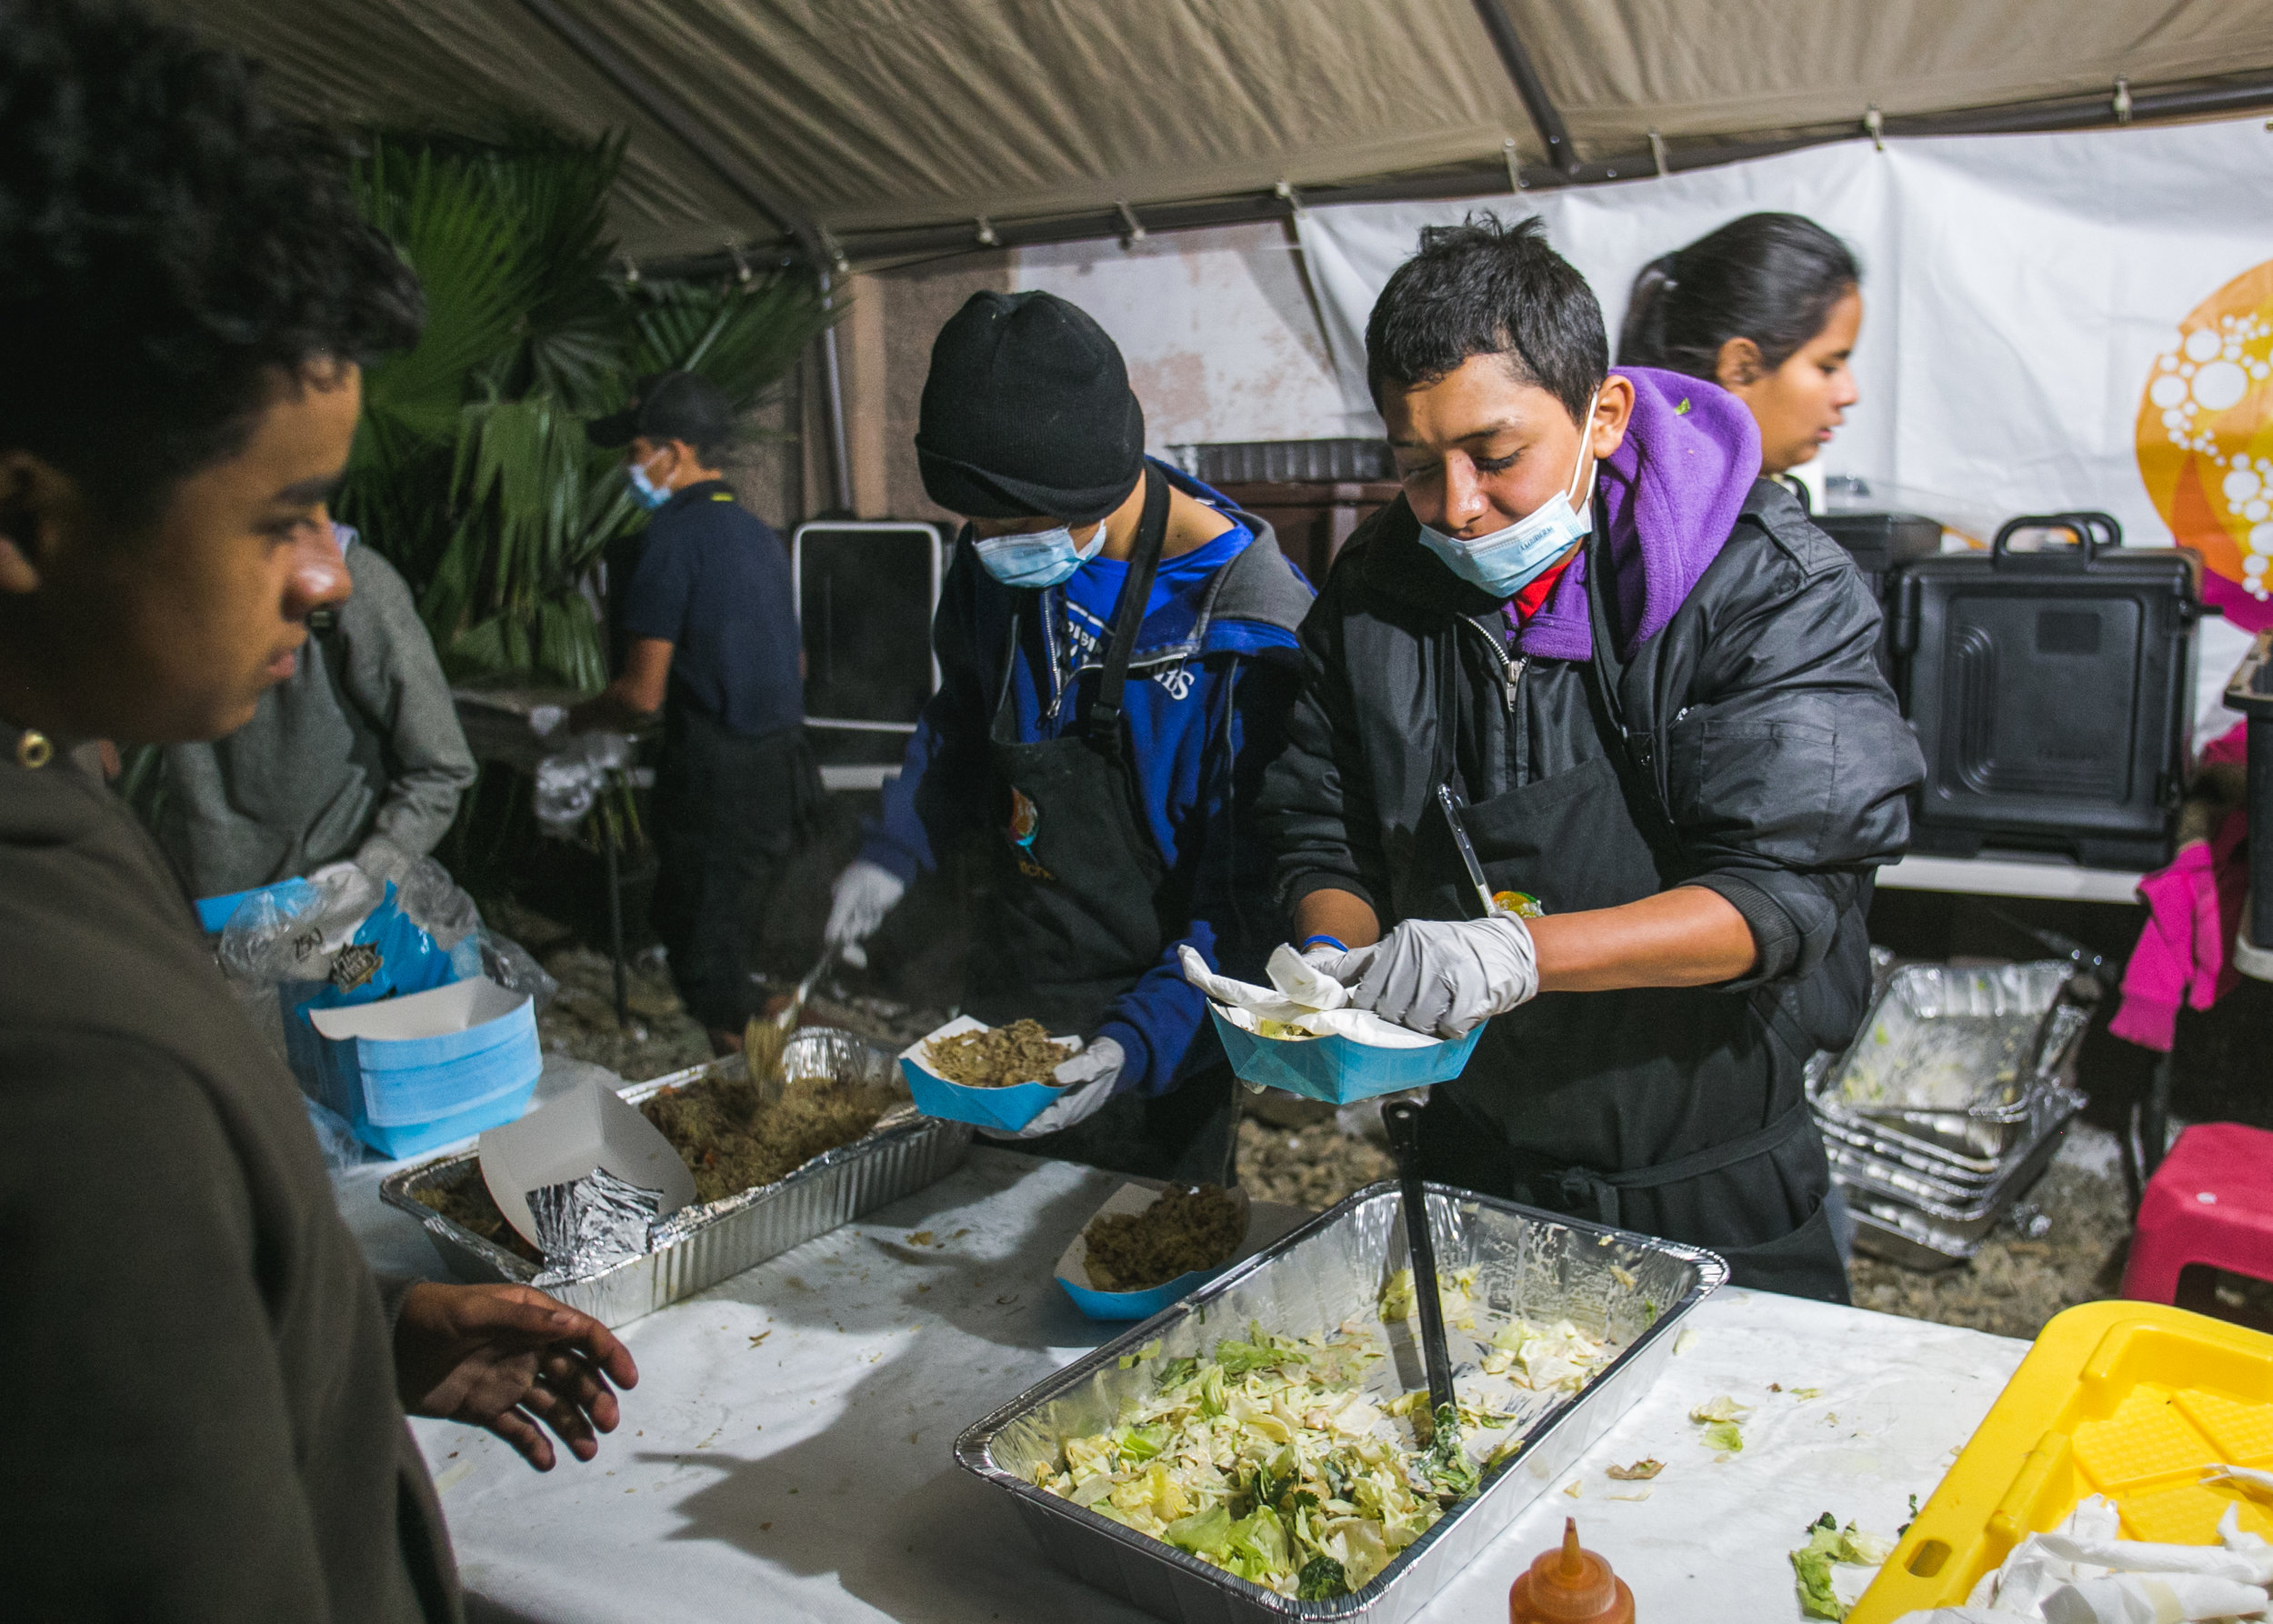 A volunteer serves dinner to over 1,500 refugees at the Barretal refugee compound. Each day, 5-6 children from the camp would assist World Central Kitchen with serving lunch. The goal of the program surrounds creating a sustainable refugee-operated kitchen in Tijuana to serve for months (or even years) to come. The recent influx in caravan activity has drawn mass media attention - but contrary to popular belief - refugees from Central America have been arriving in Tijuana for over a decade.